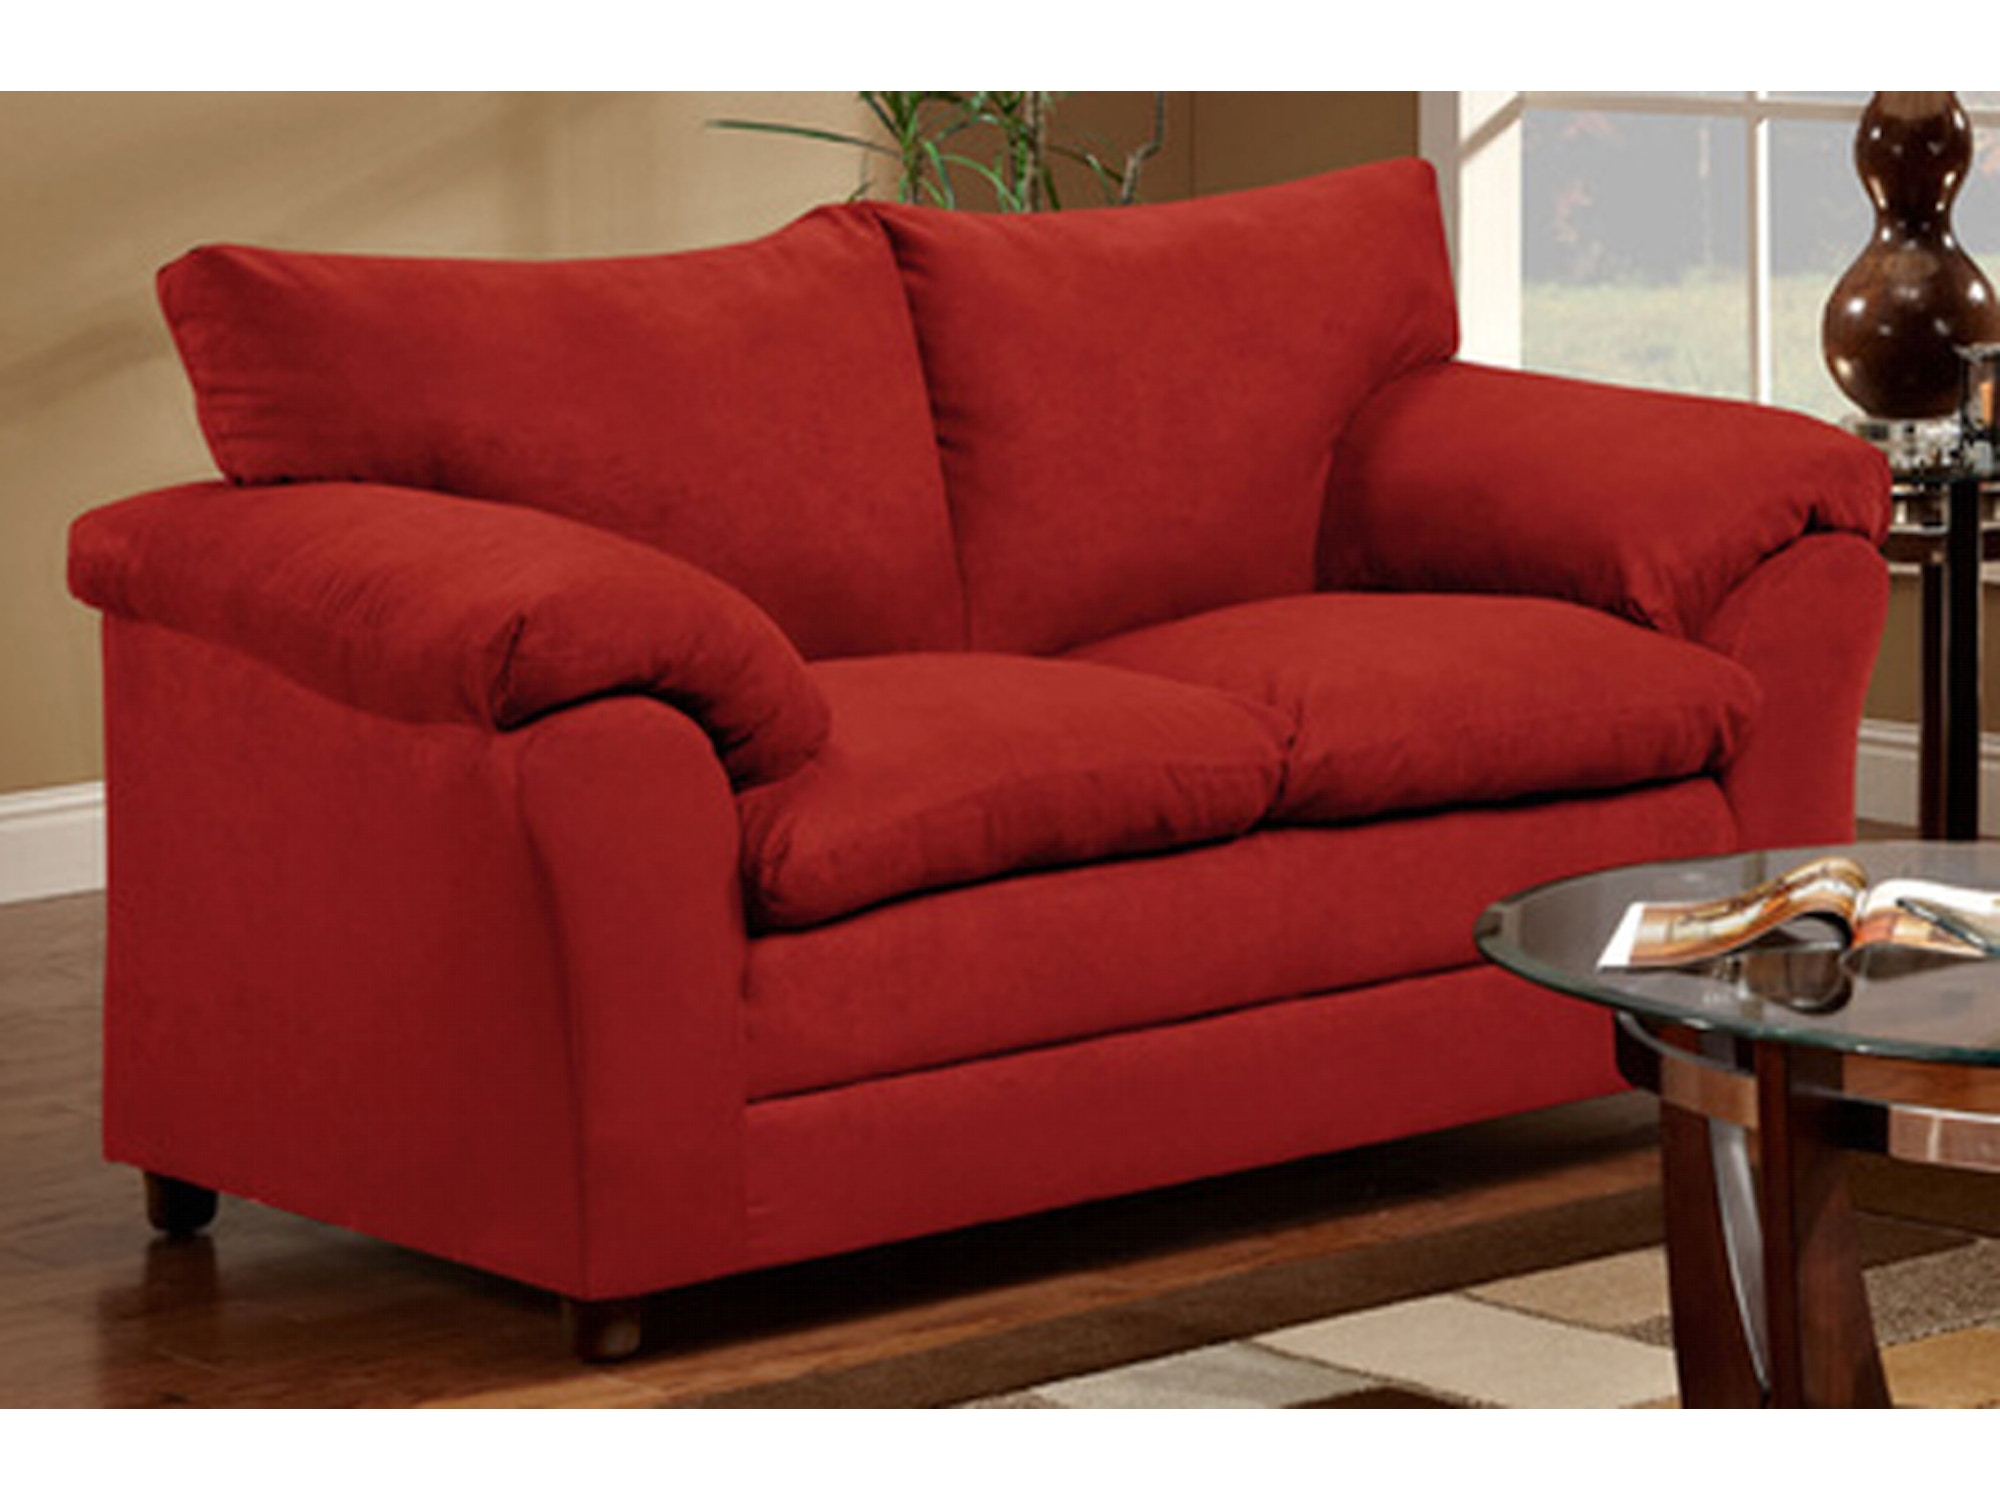 Redrock Loveseat 035772